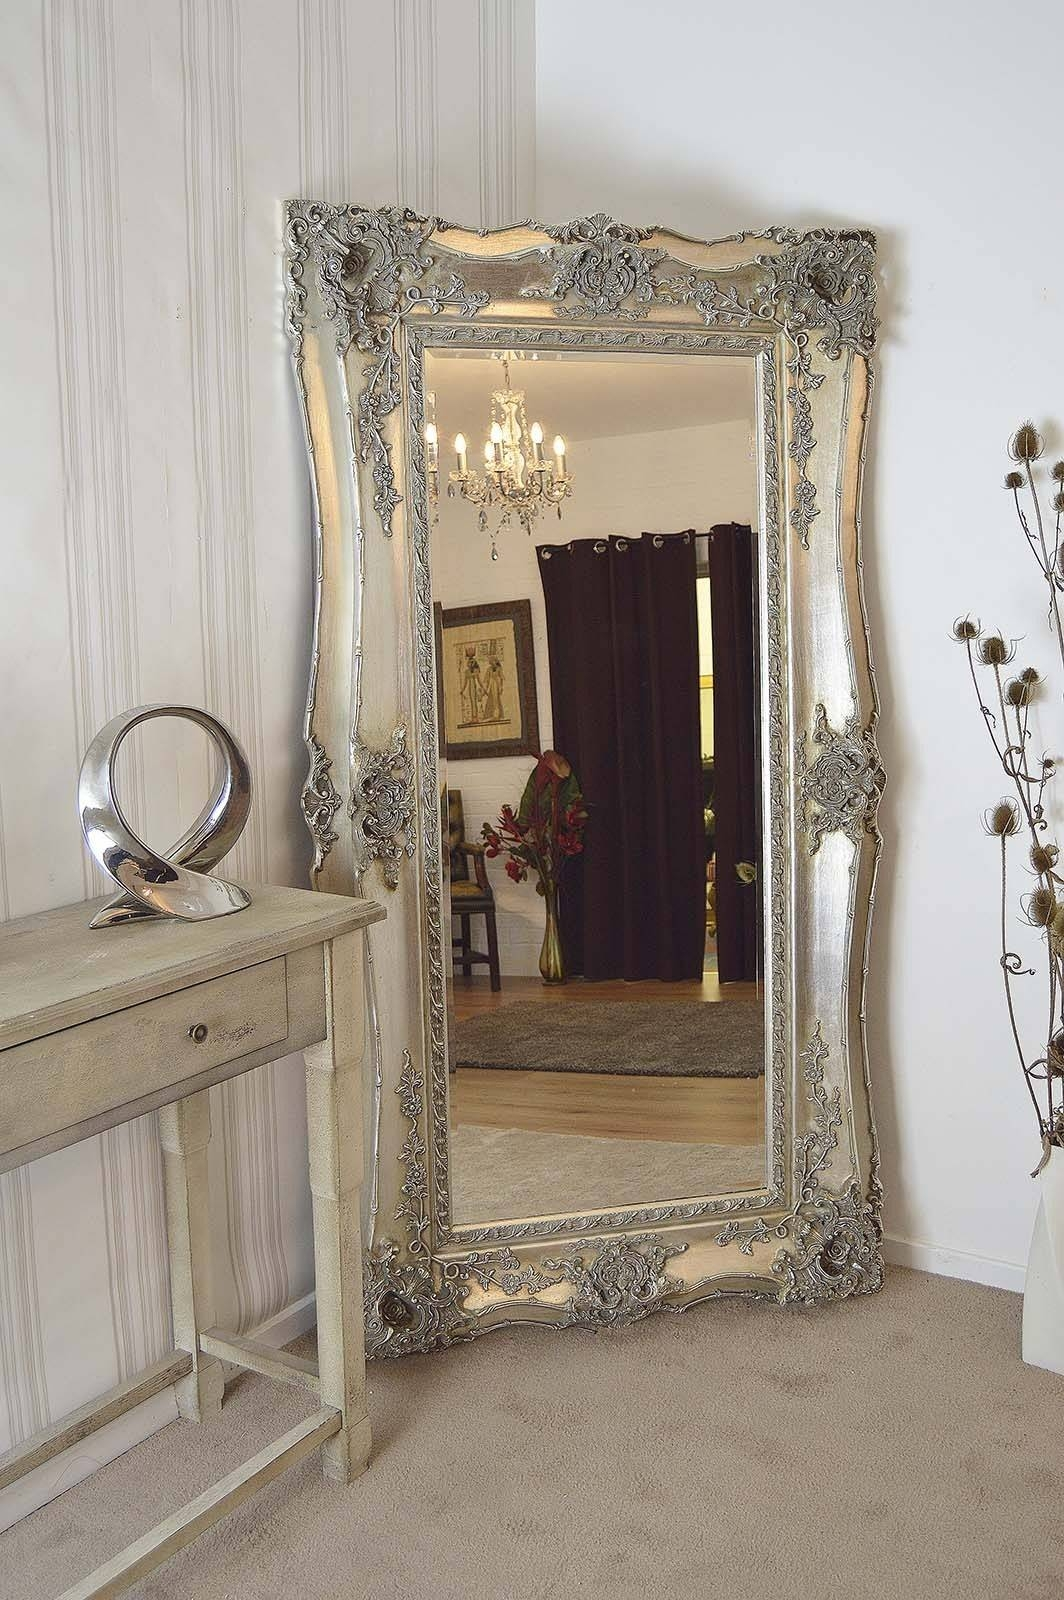 Large Antique Wall Mirror Ornate Frame Antique Ornate Wall Mirrors For Ornate Wall Mirrors (View 16 of 25)